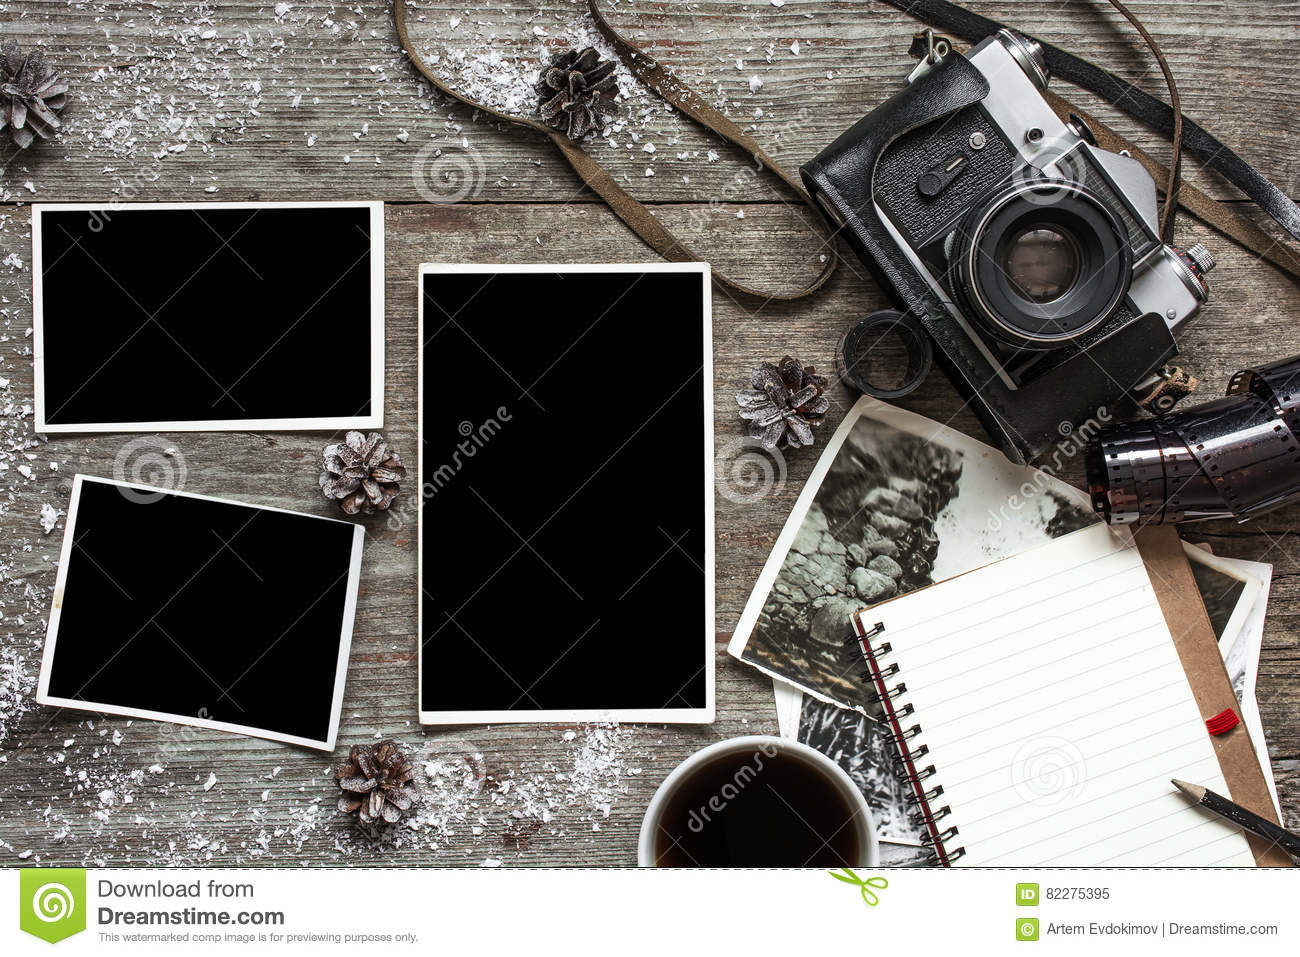 Vintage retro camera on wood table background covered with snow